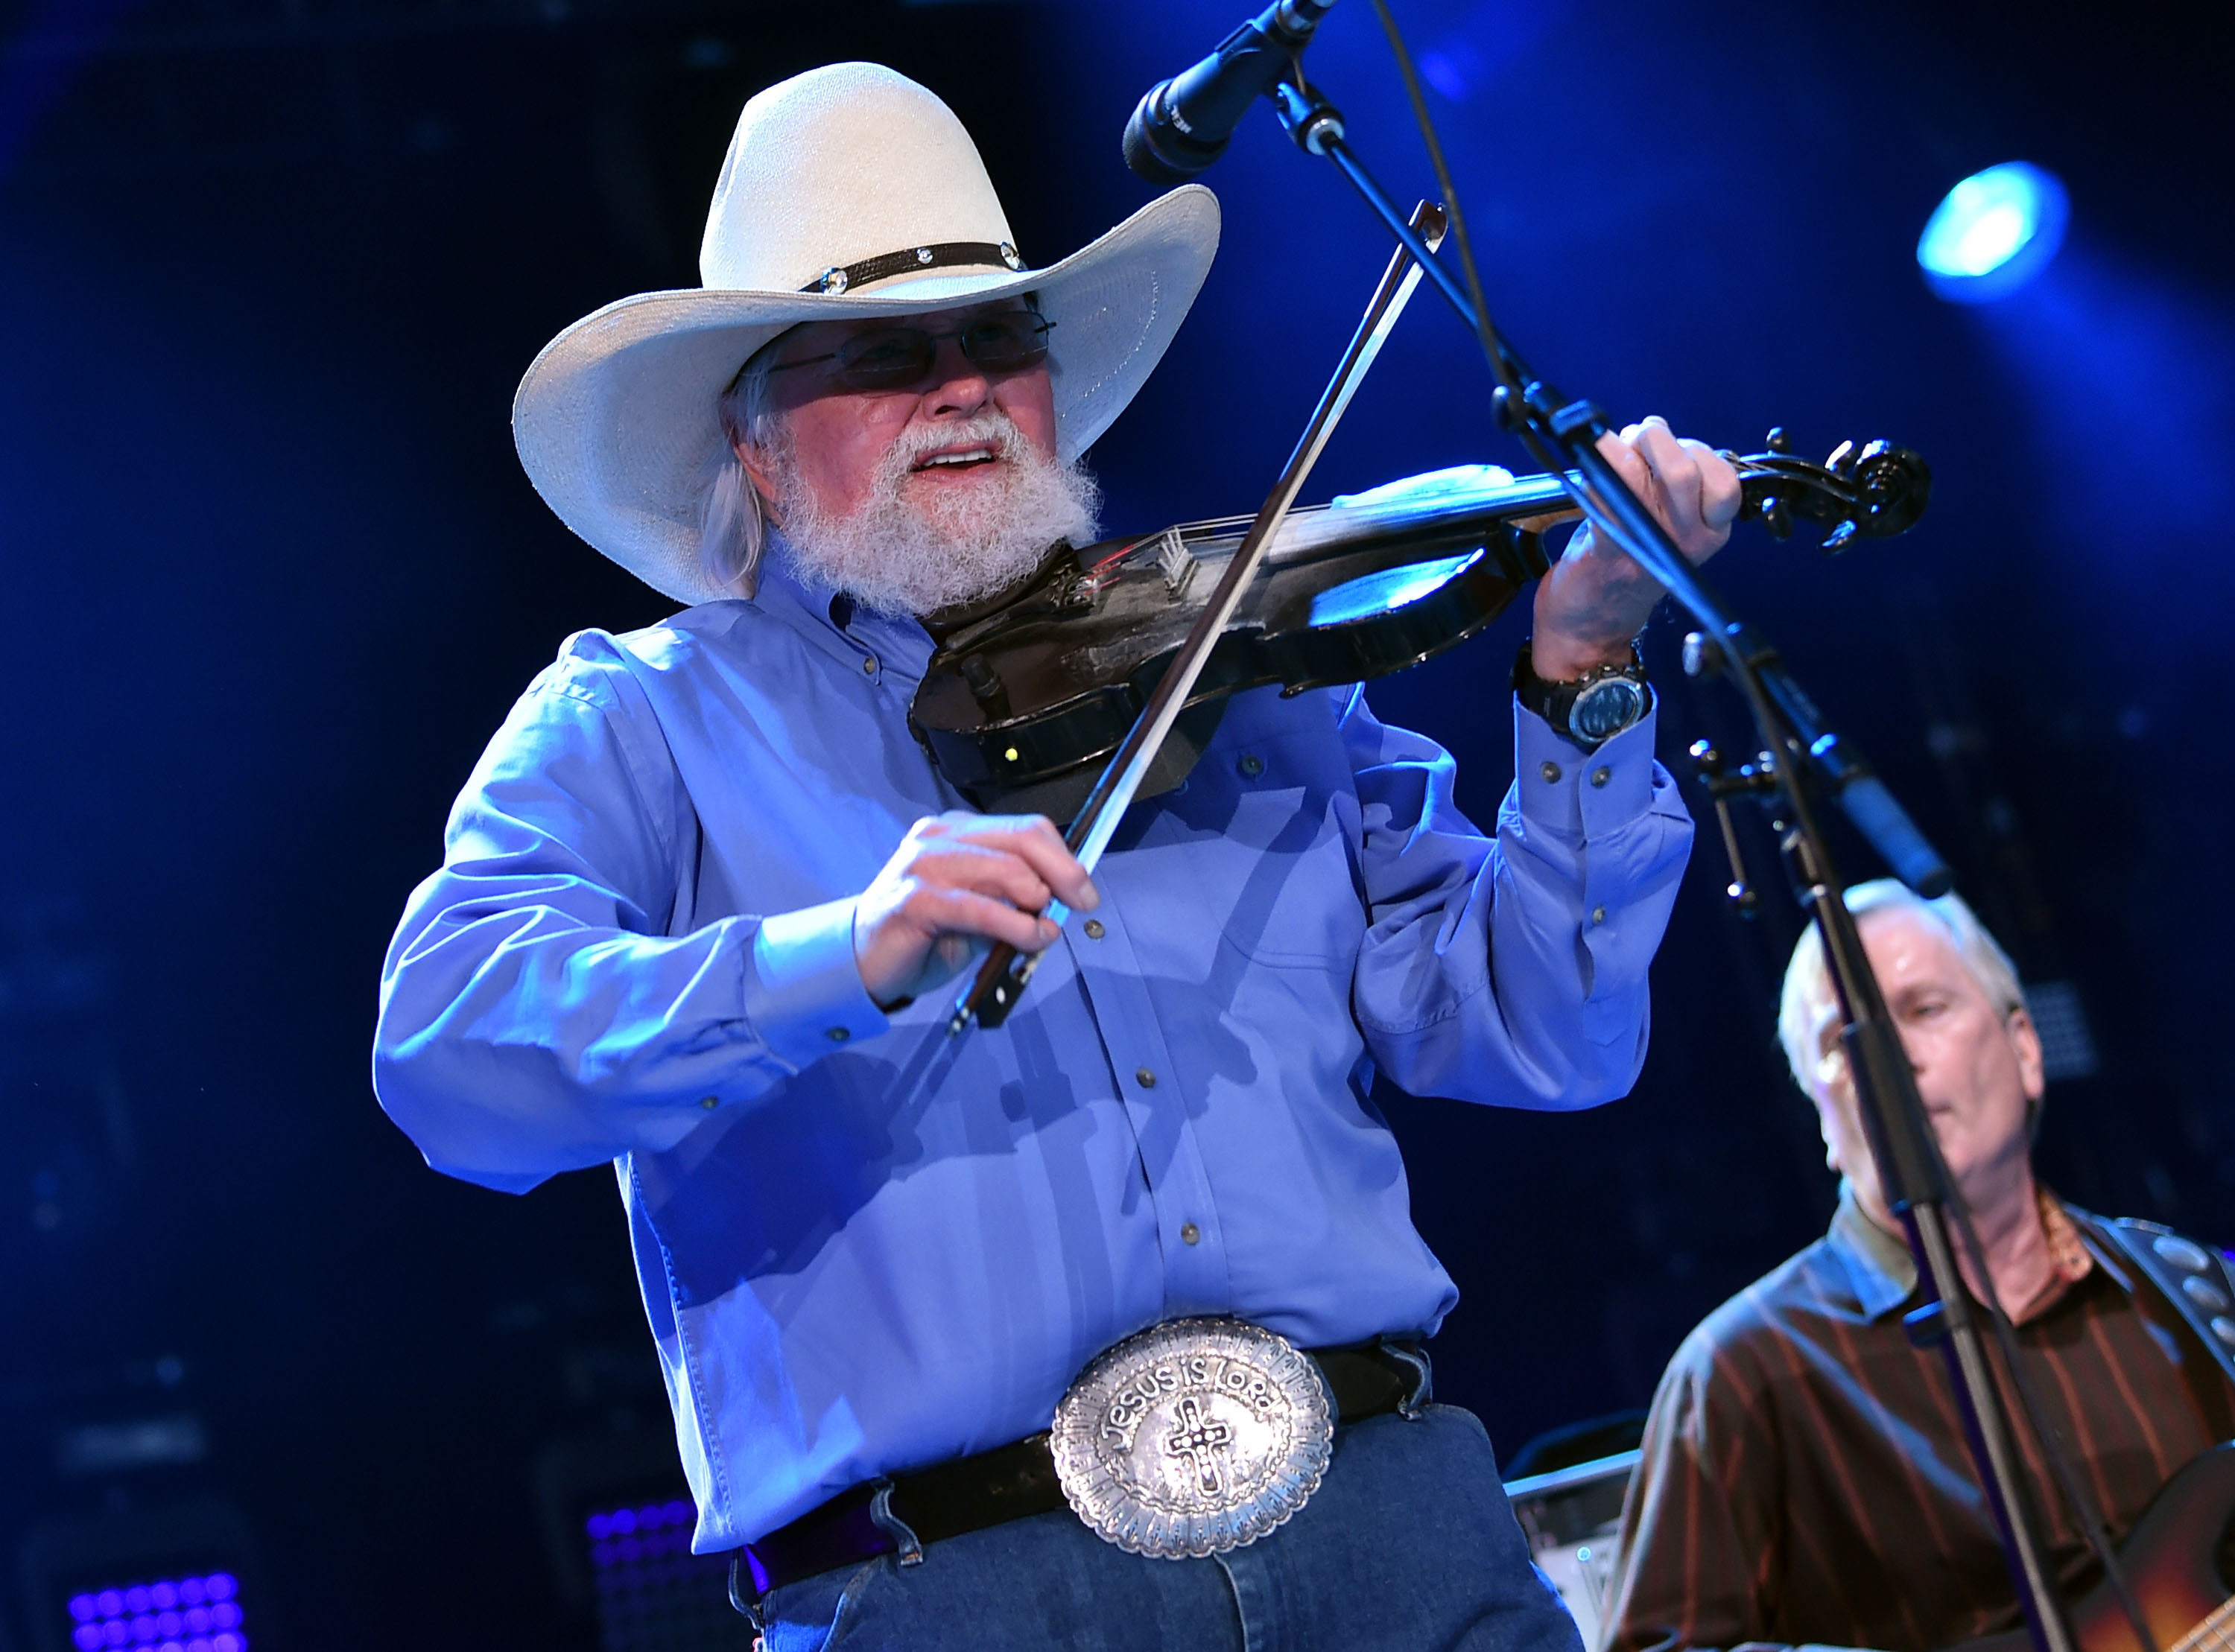 Get to Know Charlie Daniels